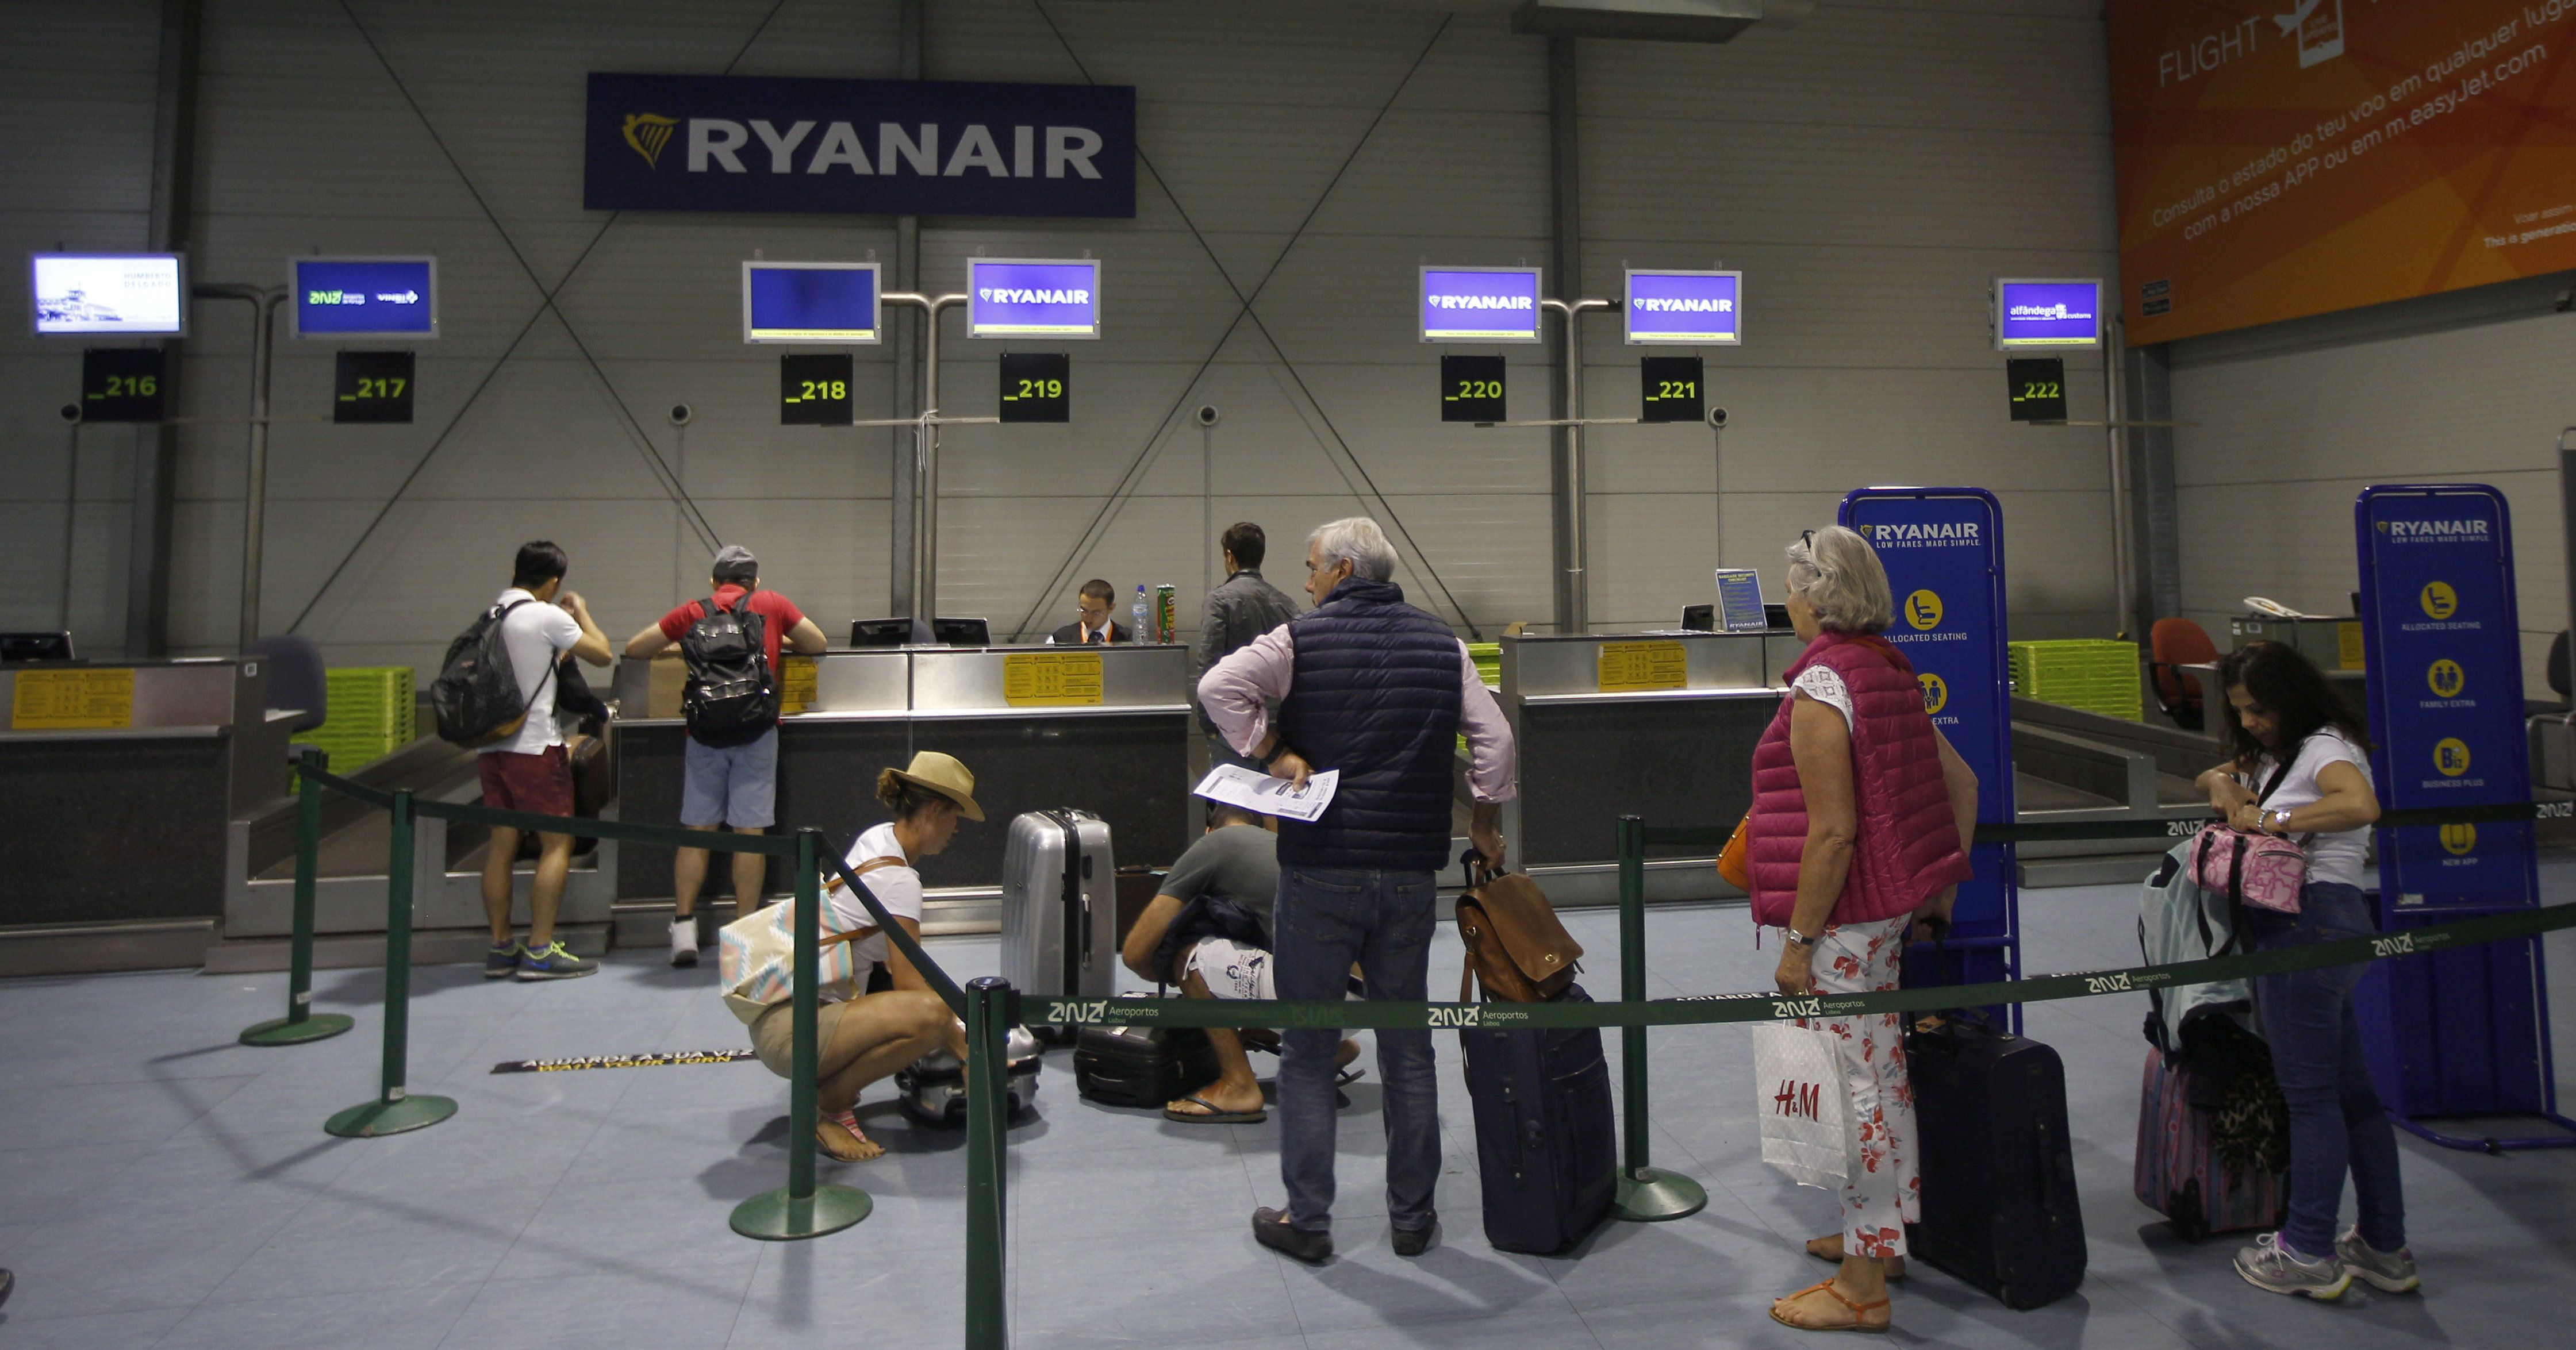 5 Passengers Who Are Having An Absolute Nightmare Because Of Ryanair